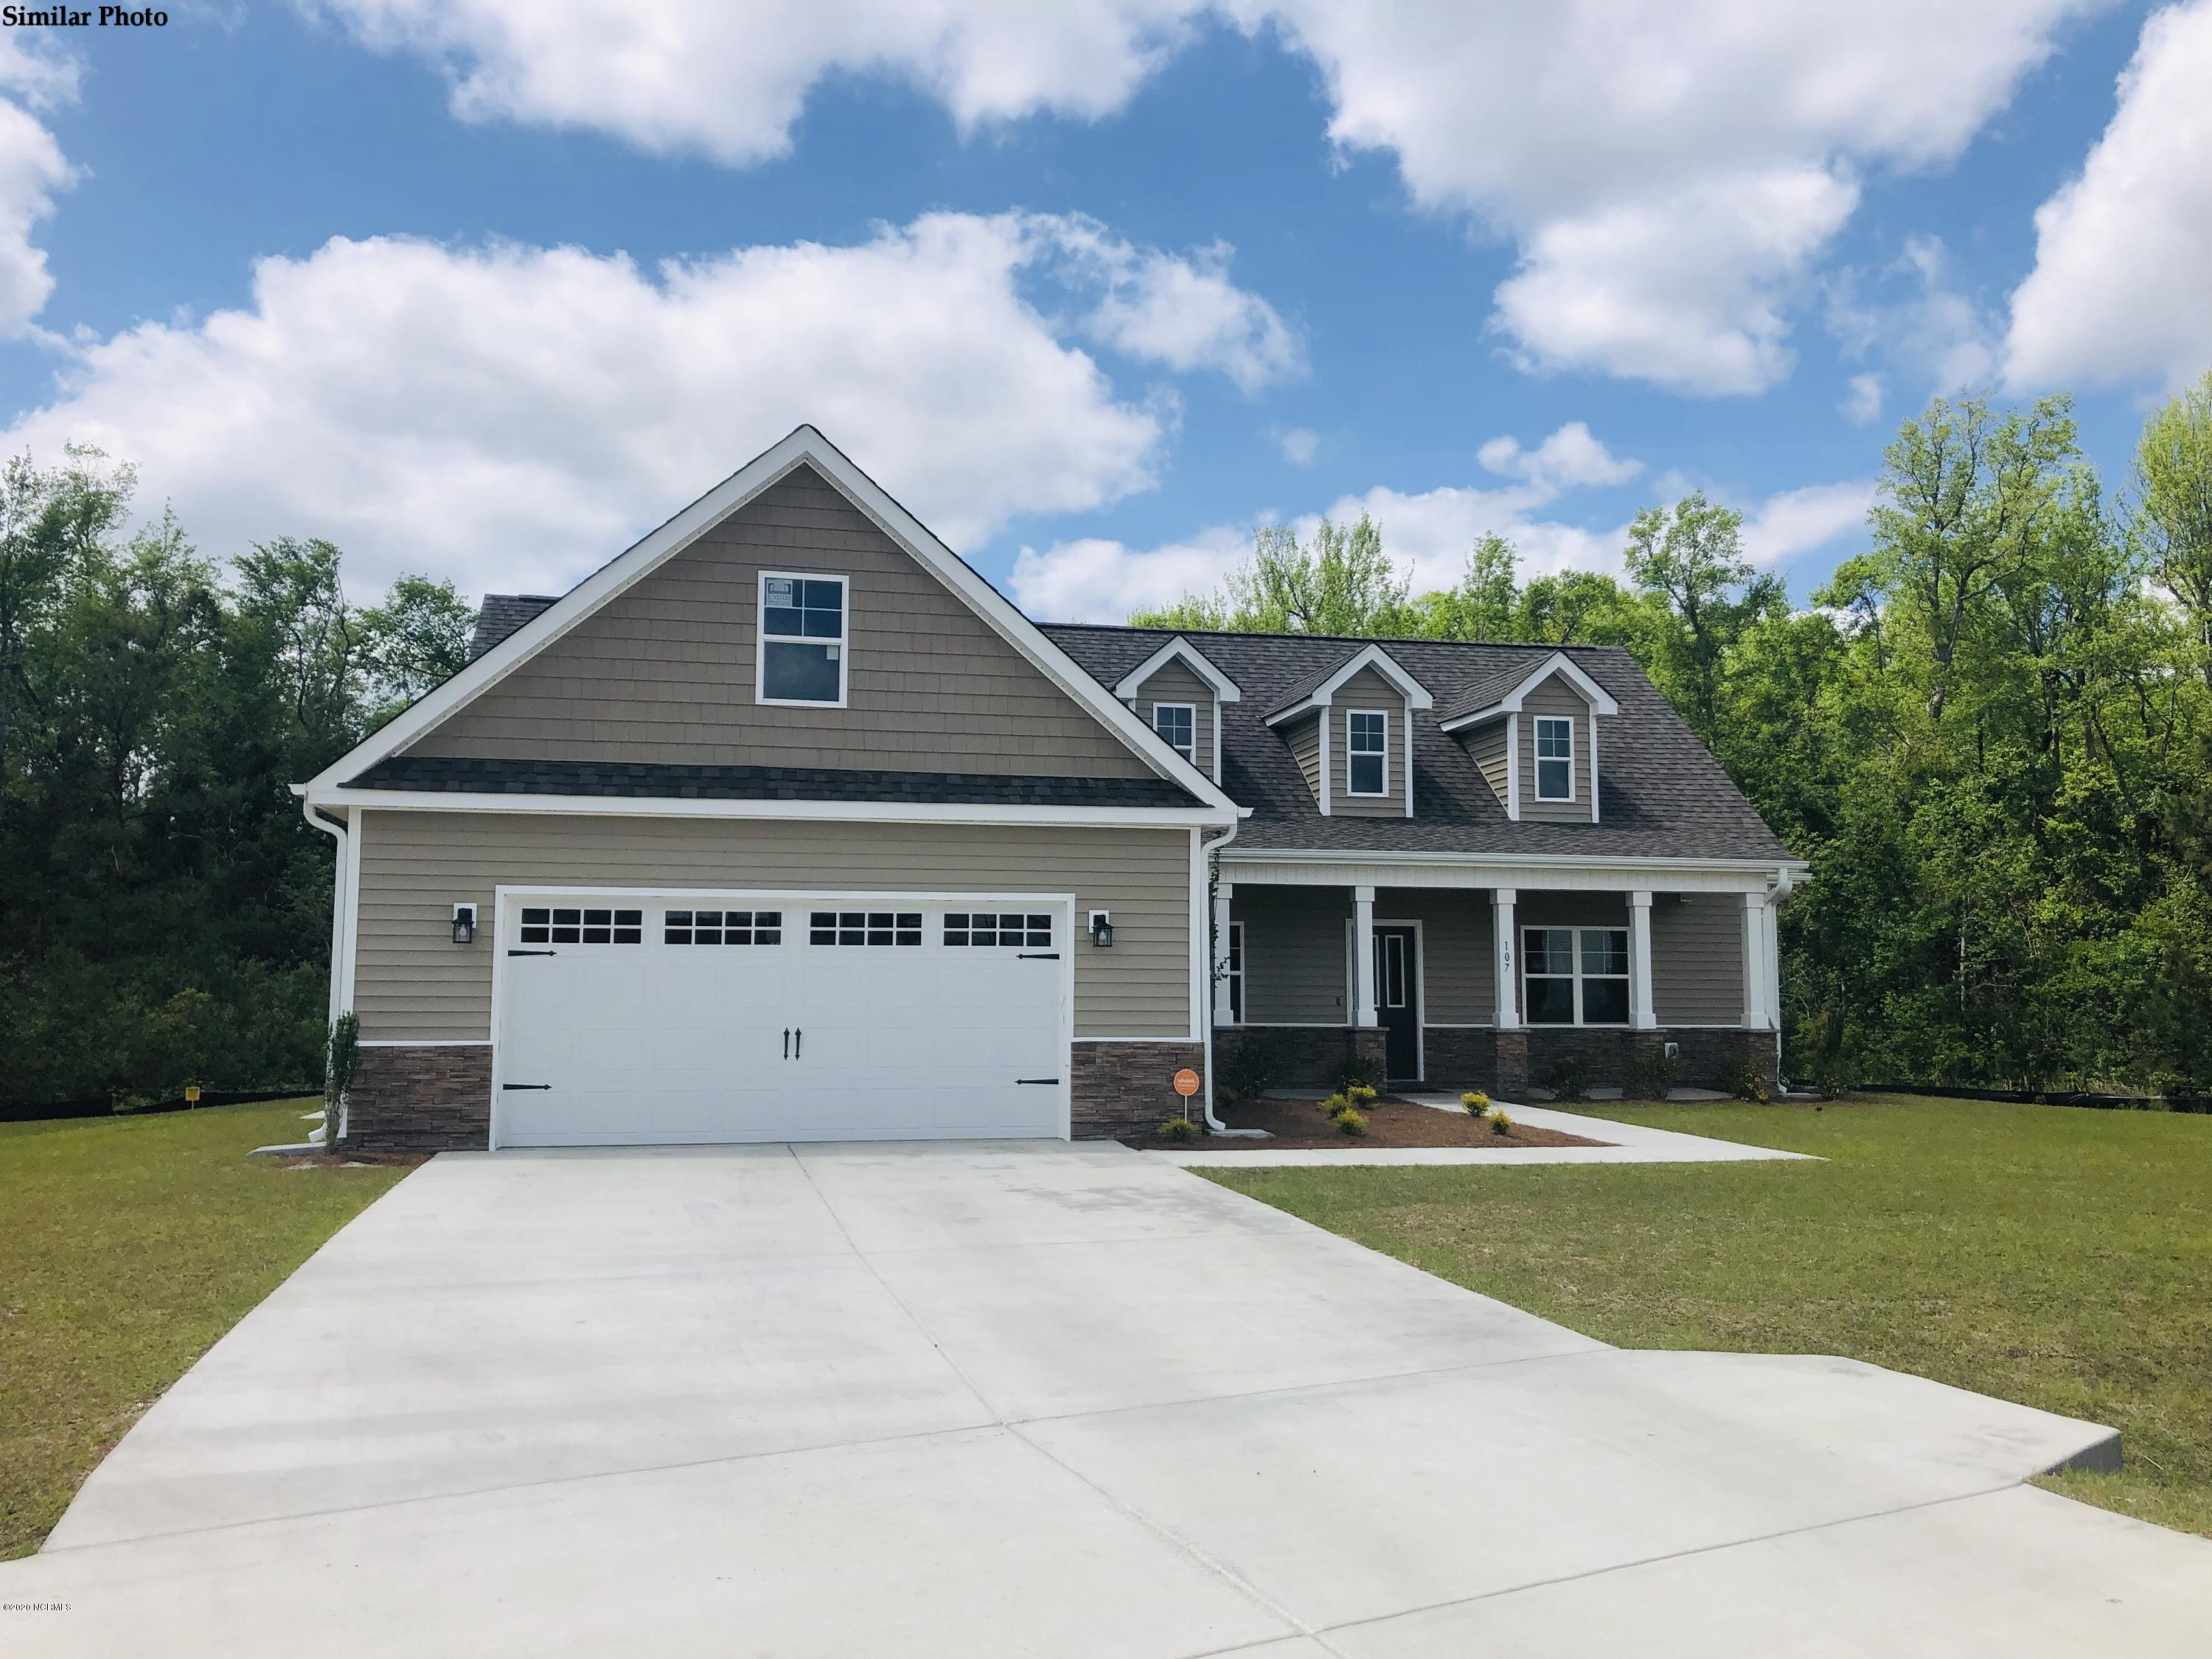 601 Creek Court, Swansboro, North Carolina 28584, 4 Bedrooms Bedrooms, 7 Rooms Rooms,3 BathroomsBathrooms,Single family residence,For sale,Creek,100218782